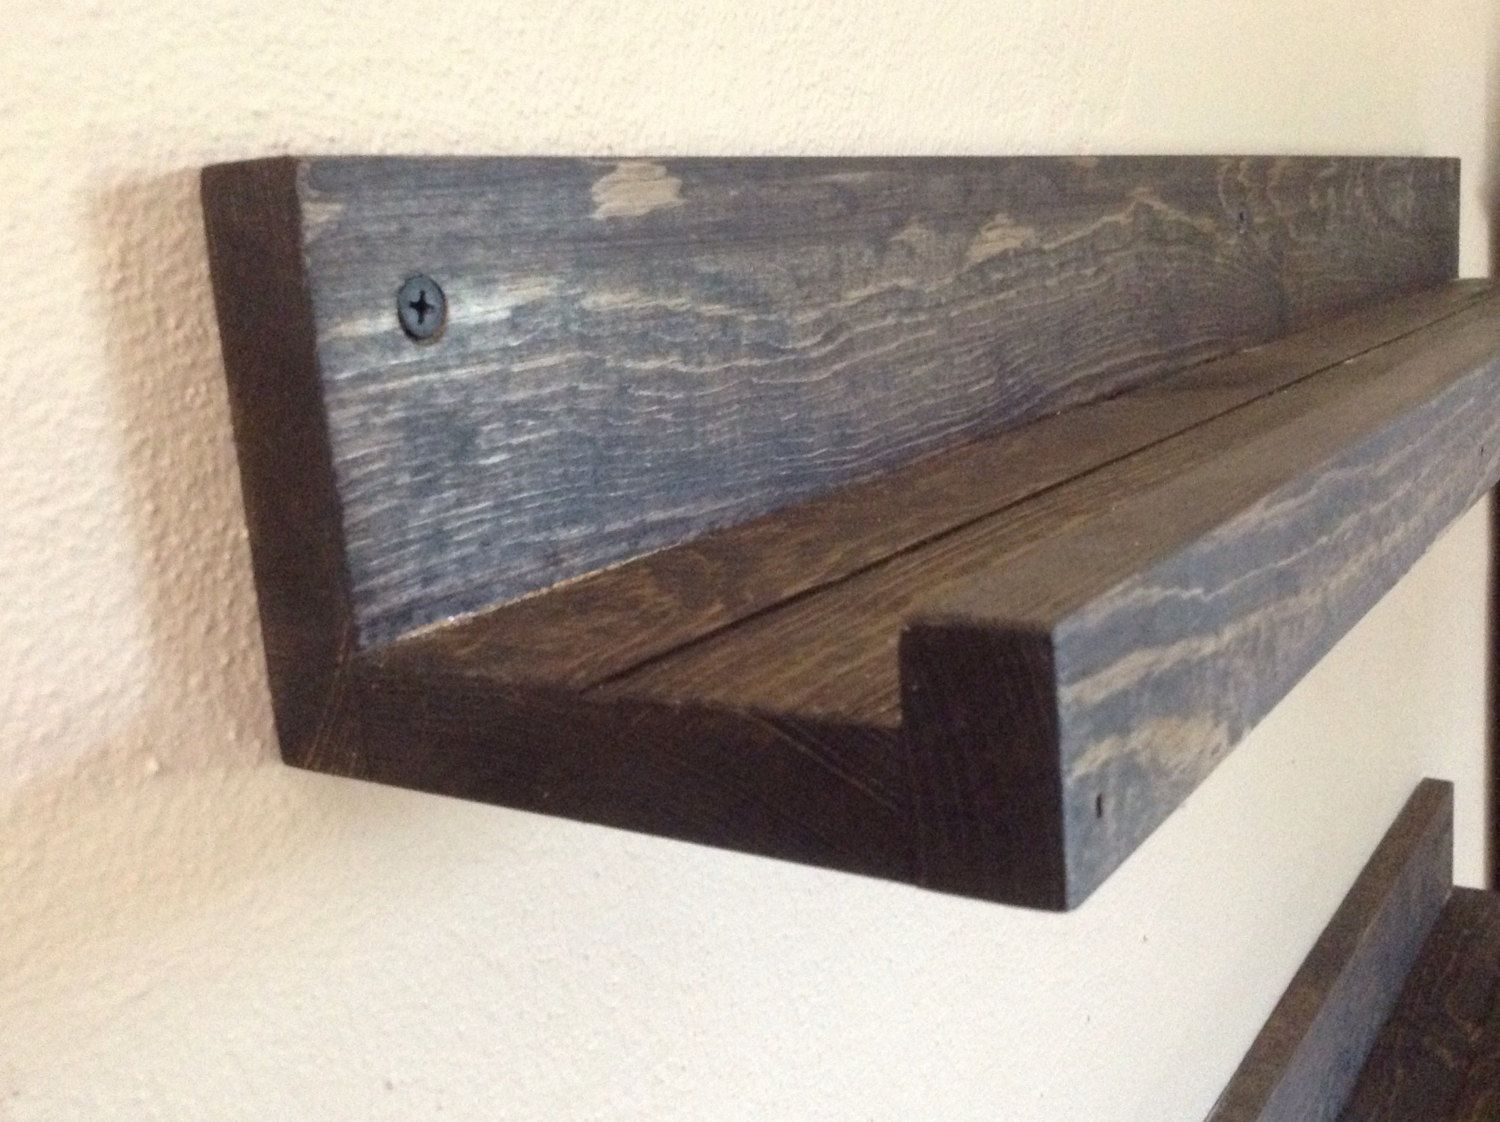 Ledge Shelf Shelves Picture Book E Rack Rustic Wood Gallery Wall Floating By Soilandsawdust On